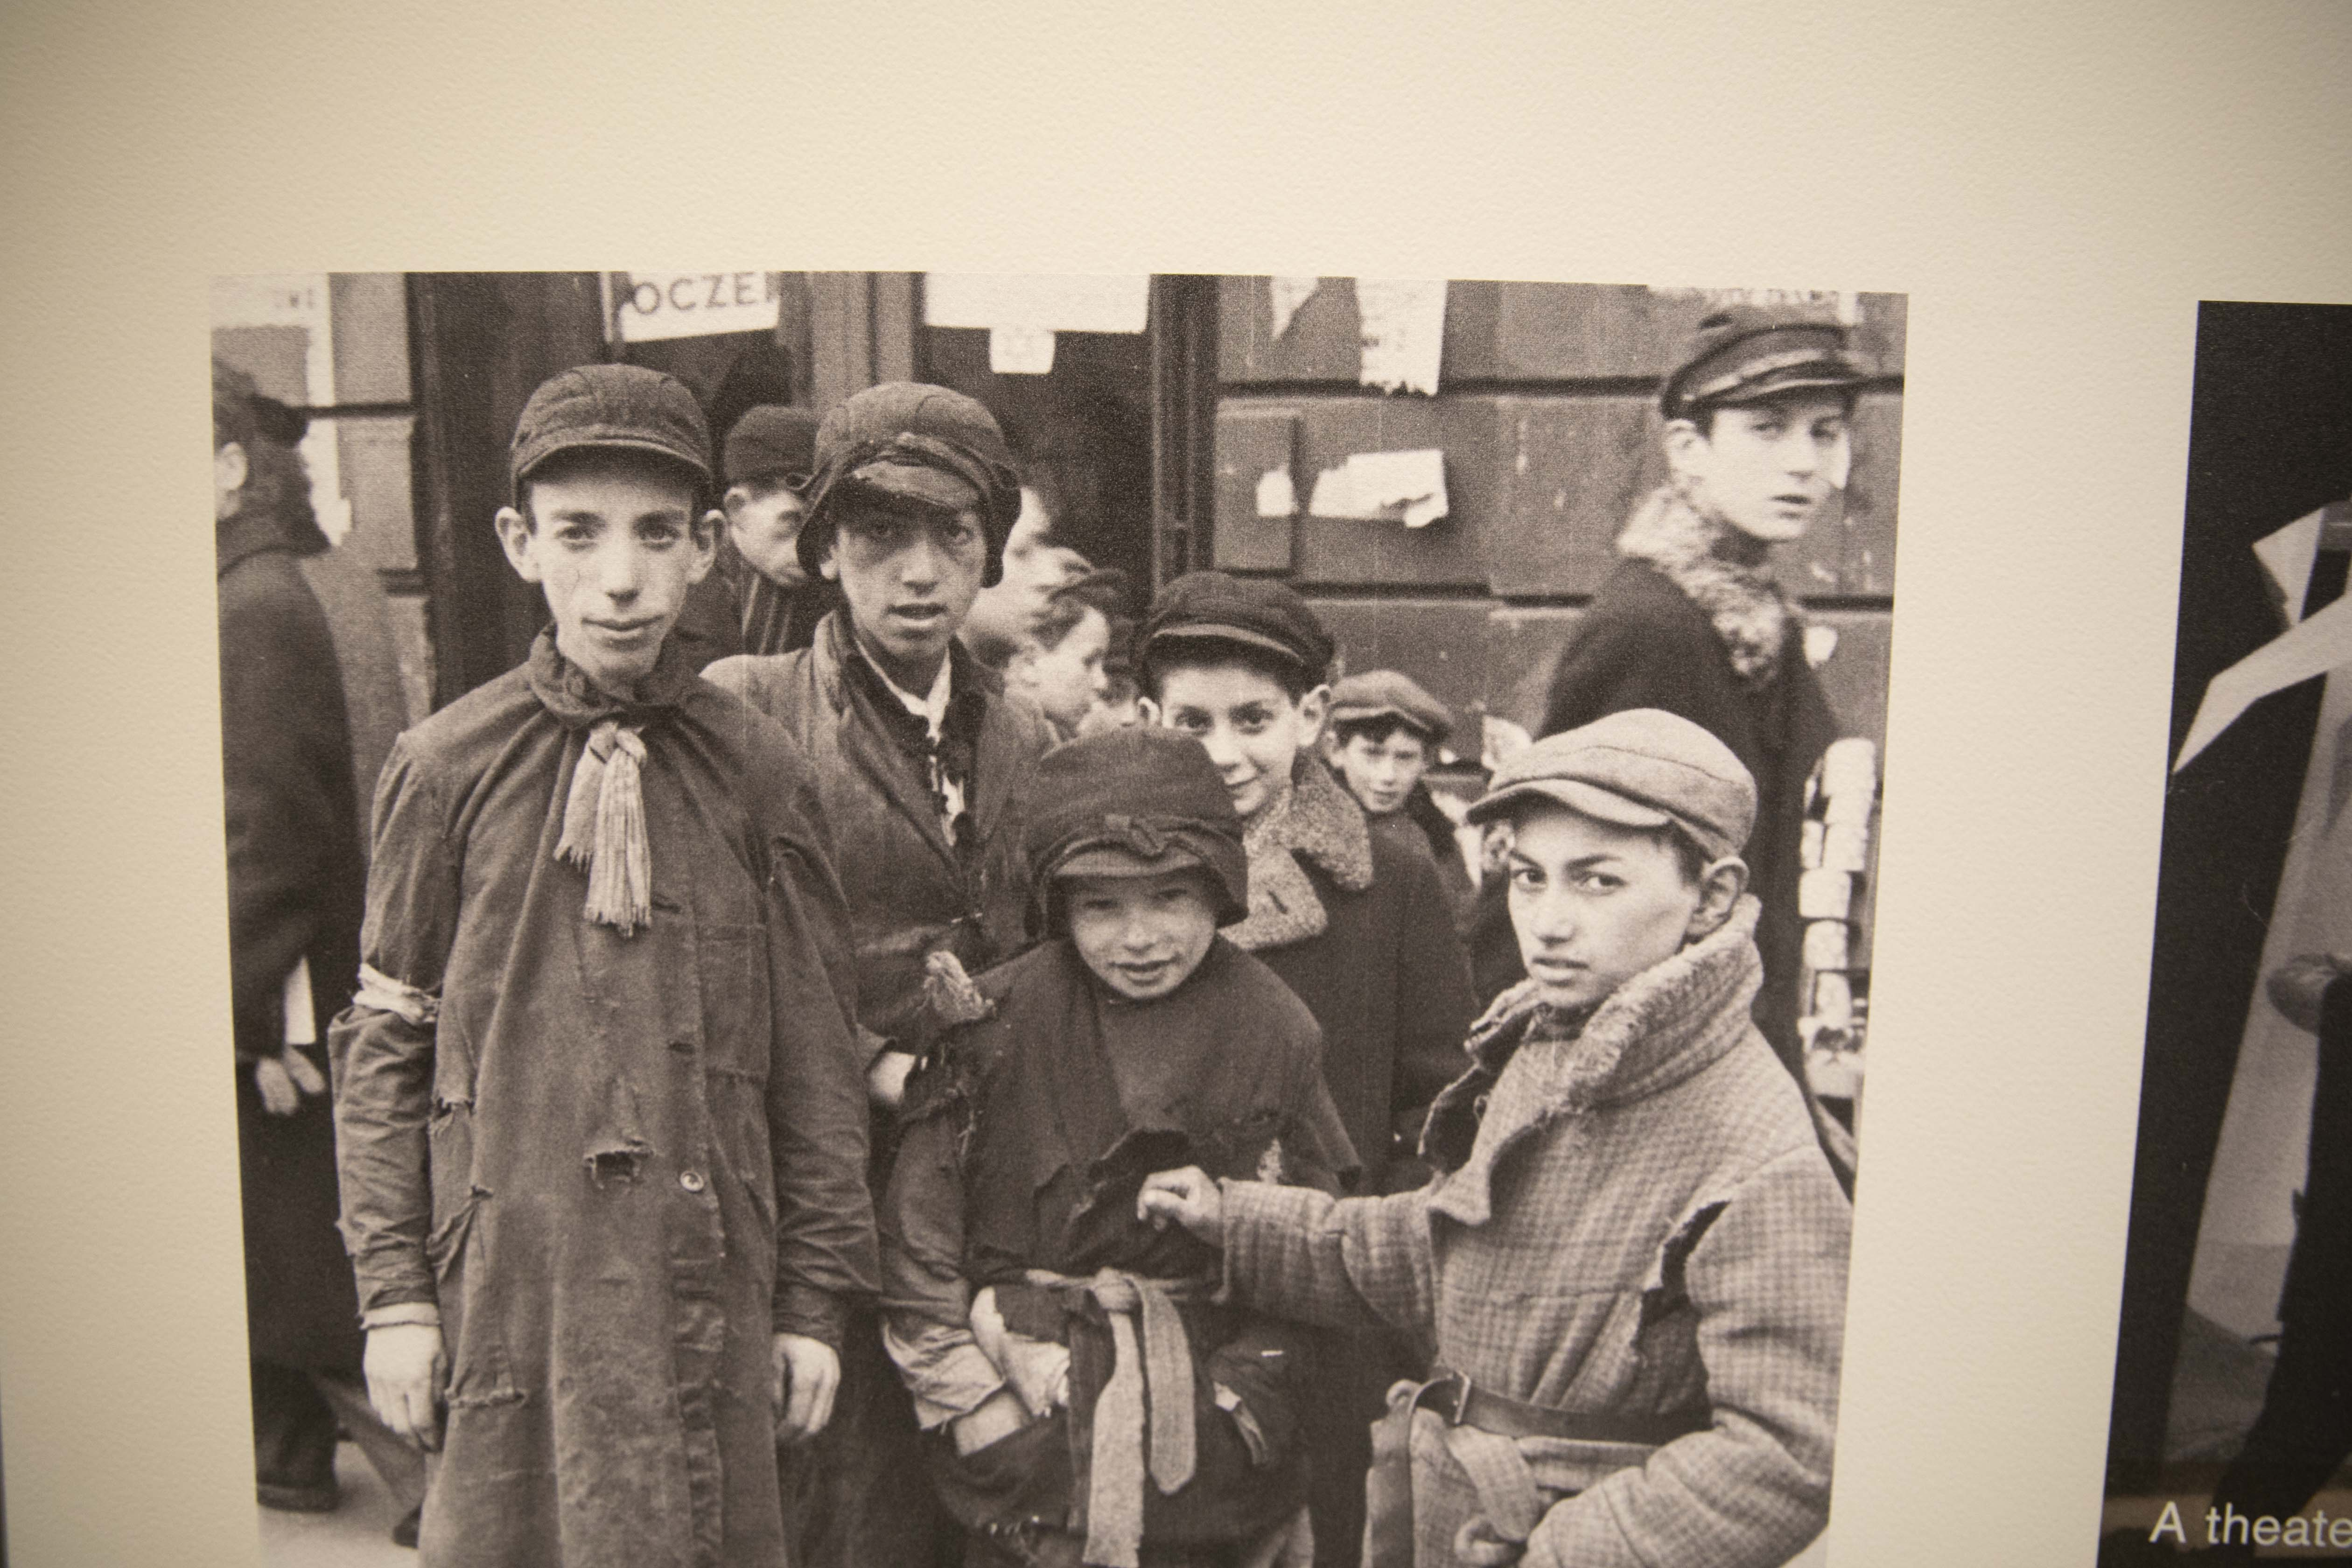 Holocaust survivor Max Glauben (fourth center from left with his face covered) stands with other boys in Warsaw, Poland before his family is deported to the Majdanek concentration camp in Poland. (Photo via Dallas Holocaust and Human Rights Museum)